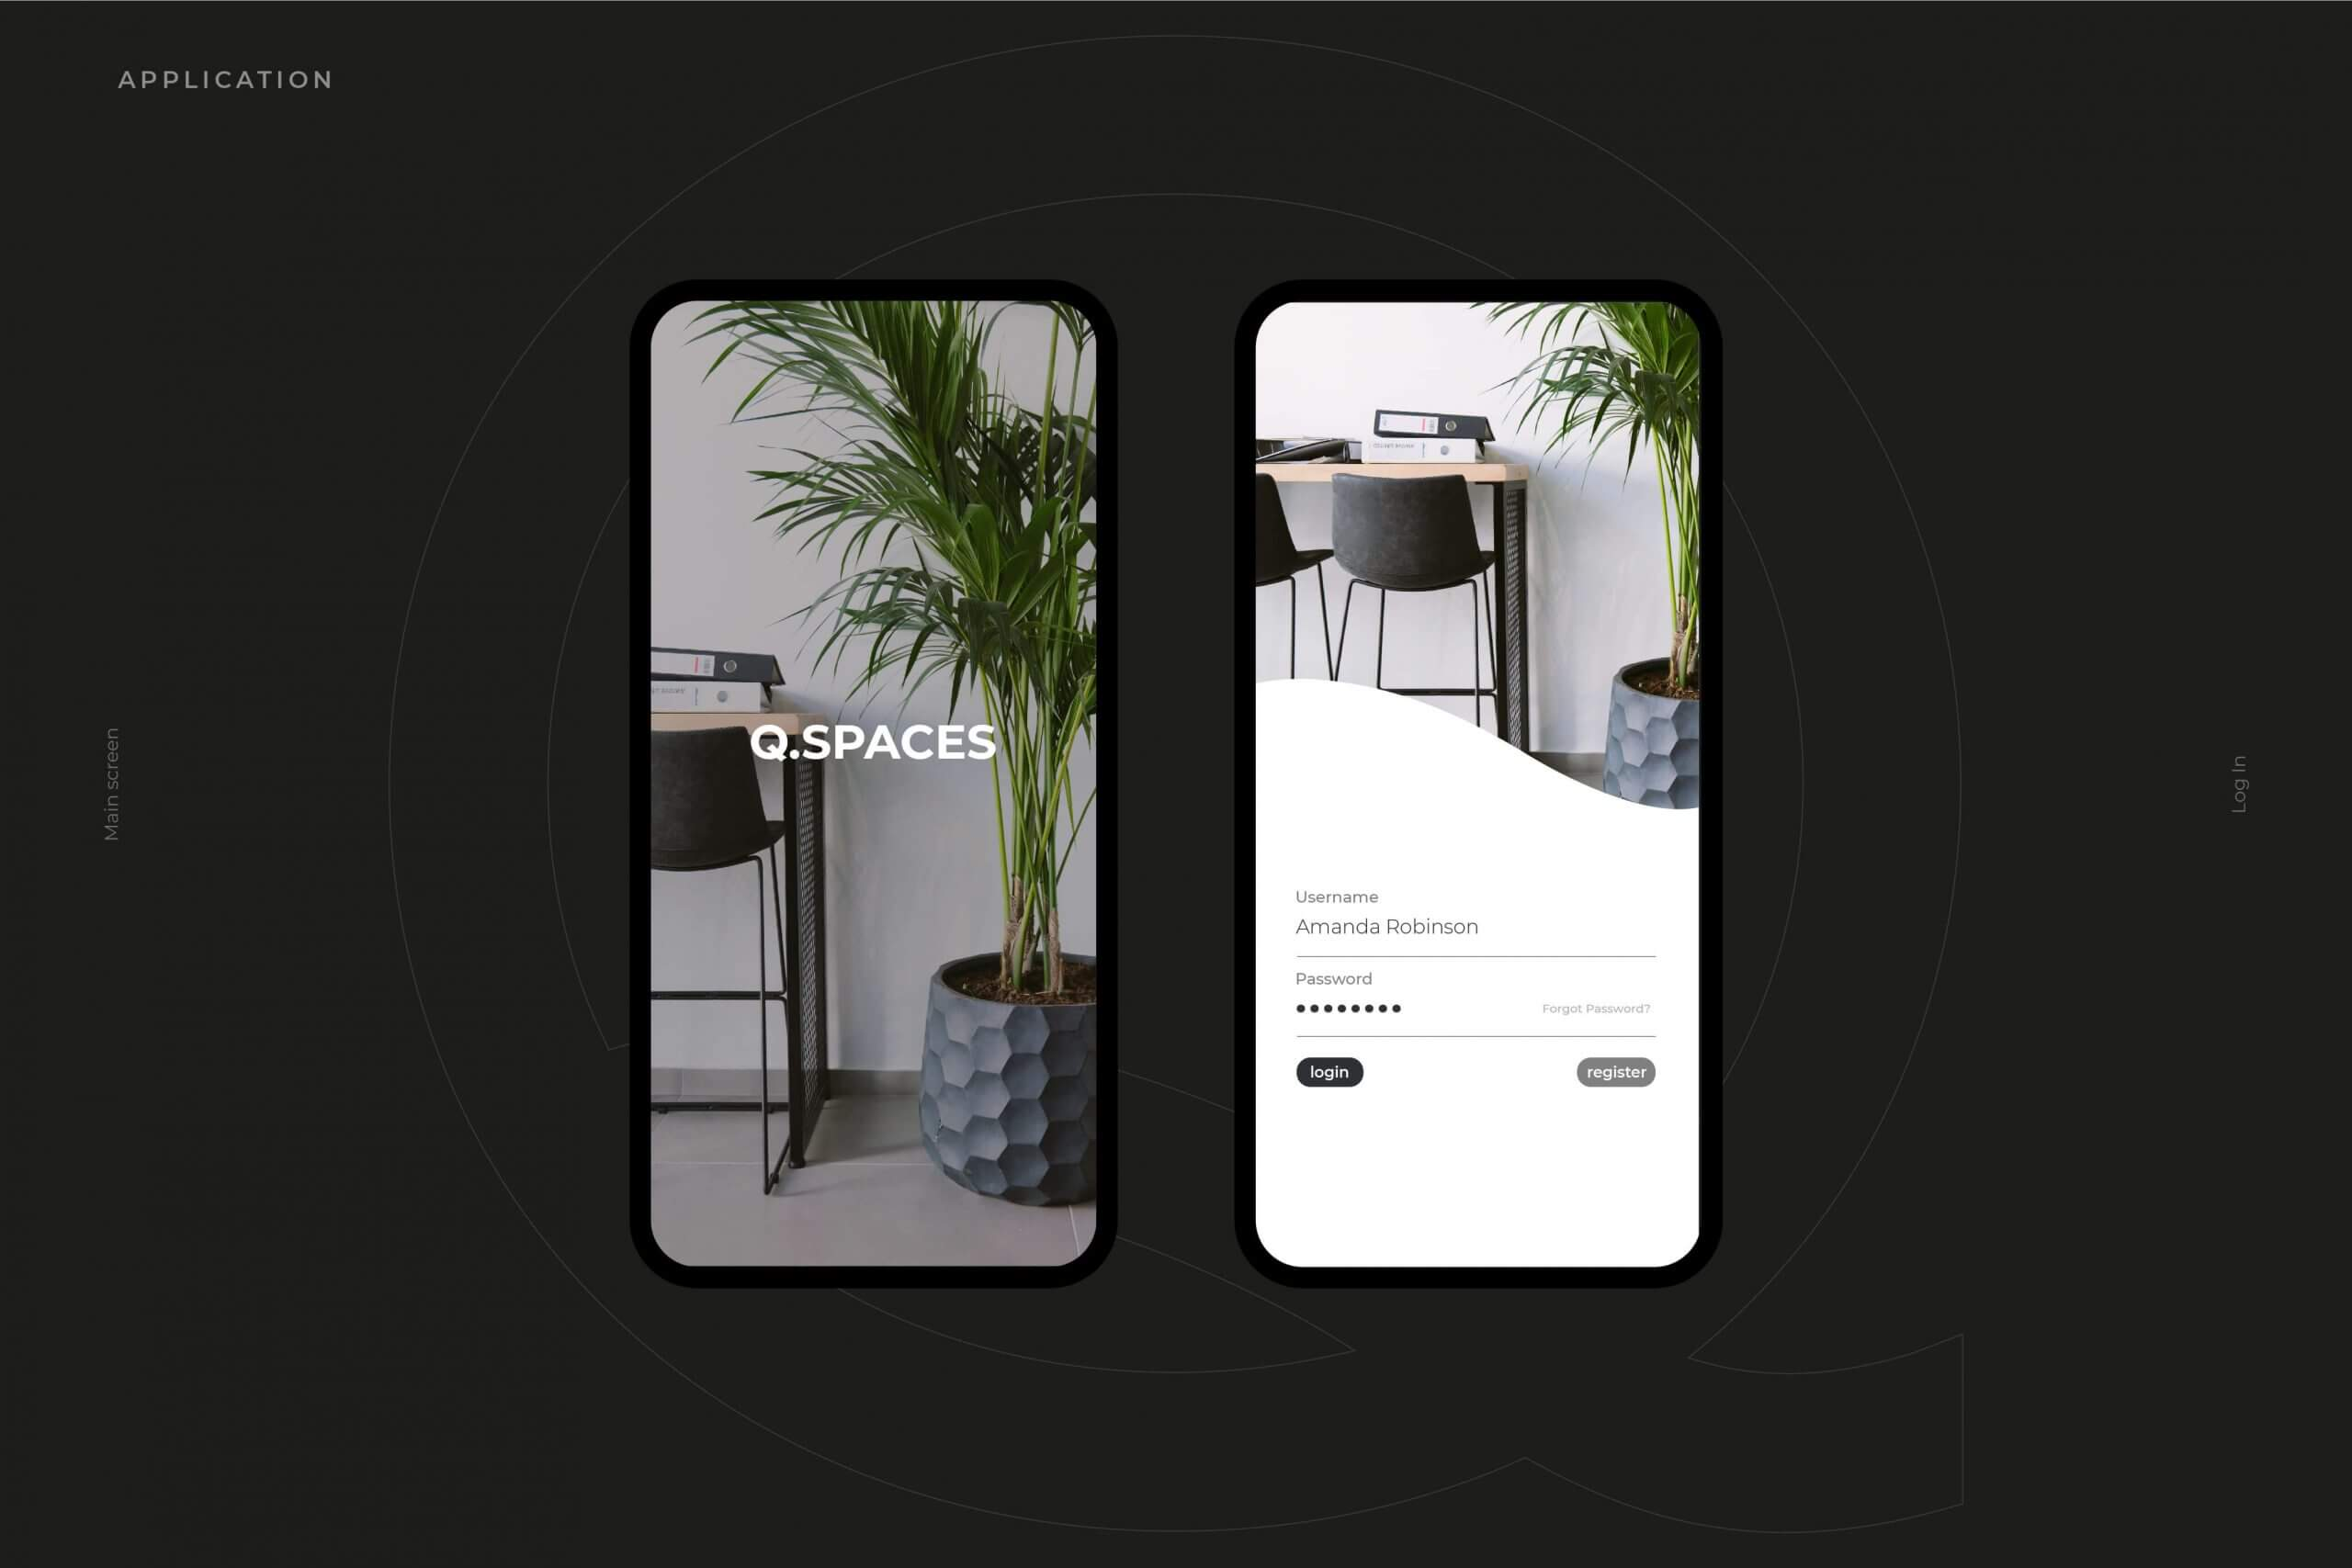 The-Q-website-and-app-design-ux-and-branding-9-scaled-1